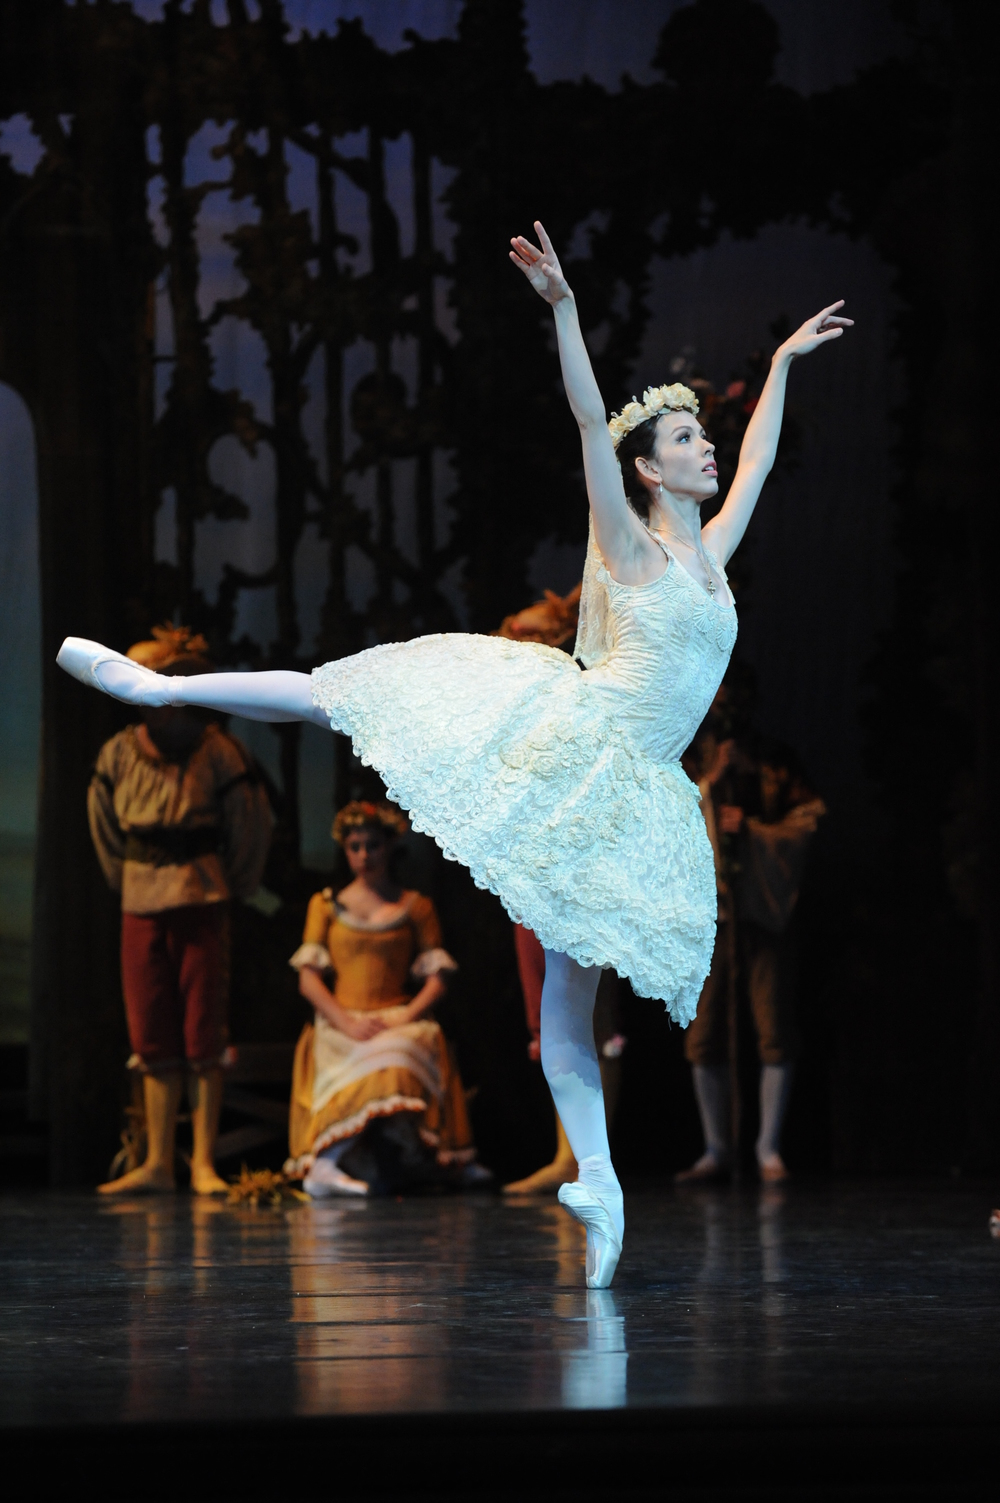 Juliet Burnett as Prayer in Peggy van Praagh's Coppelia